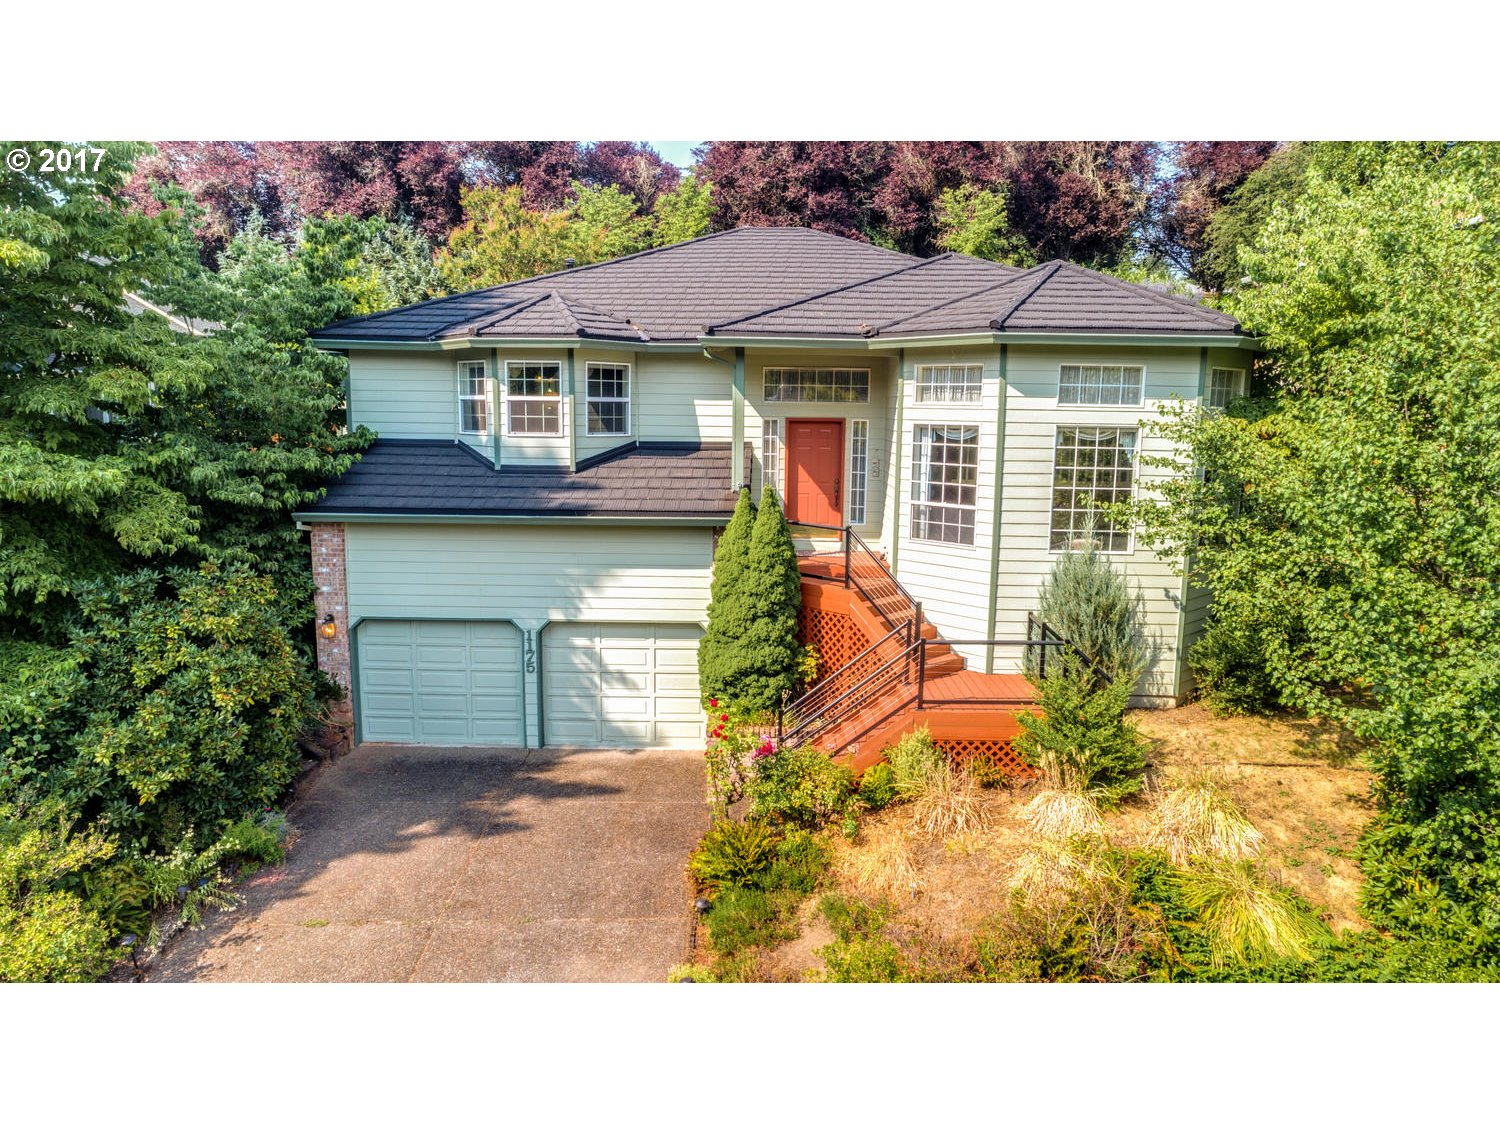 1175 SWIFTSHORE CIR, West Linn OR 97068